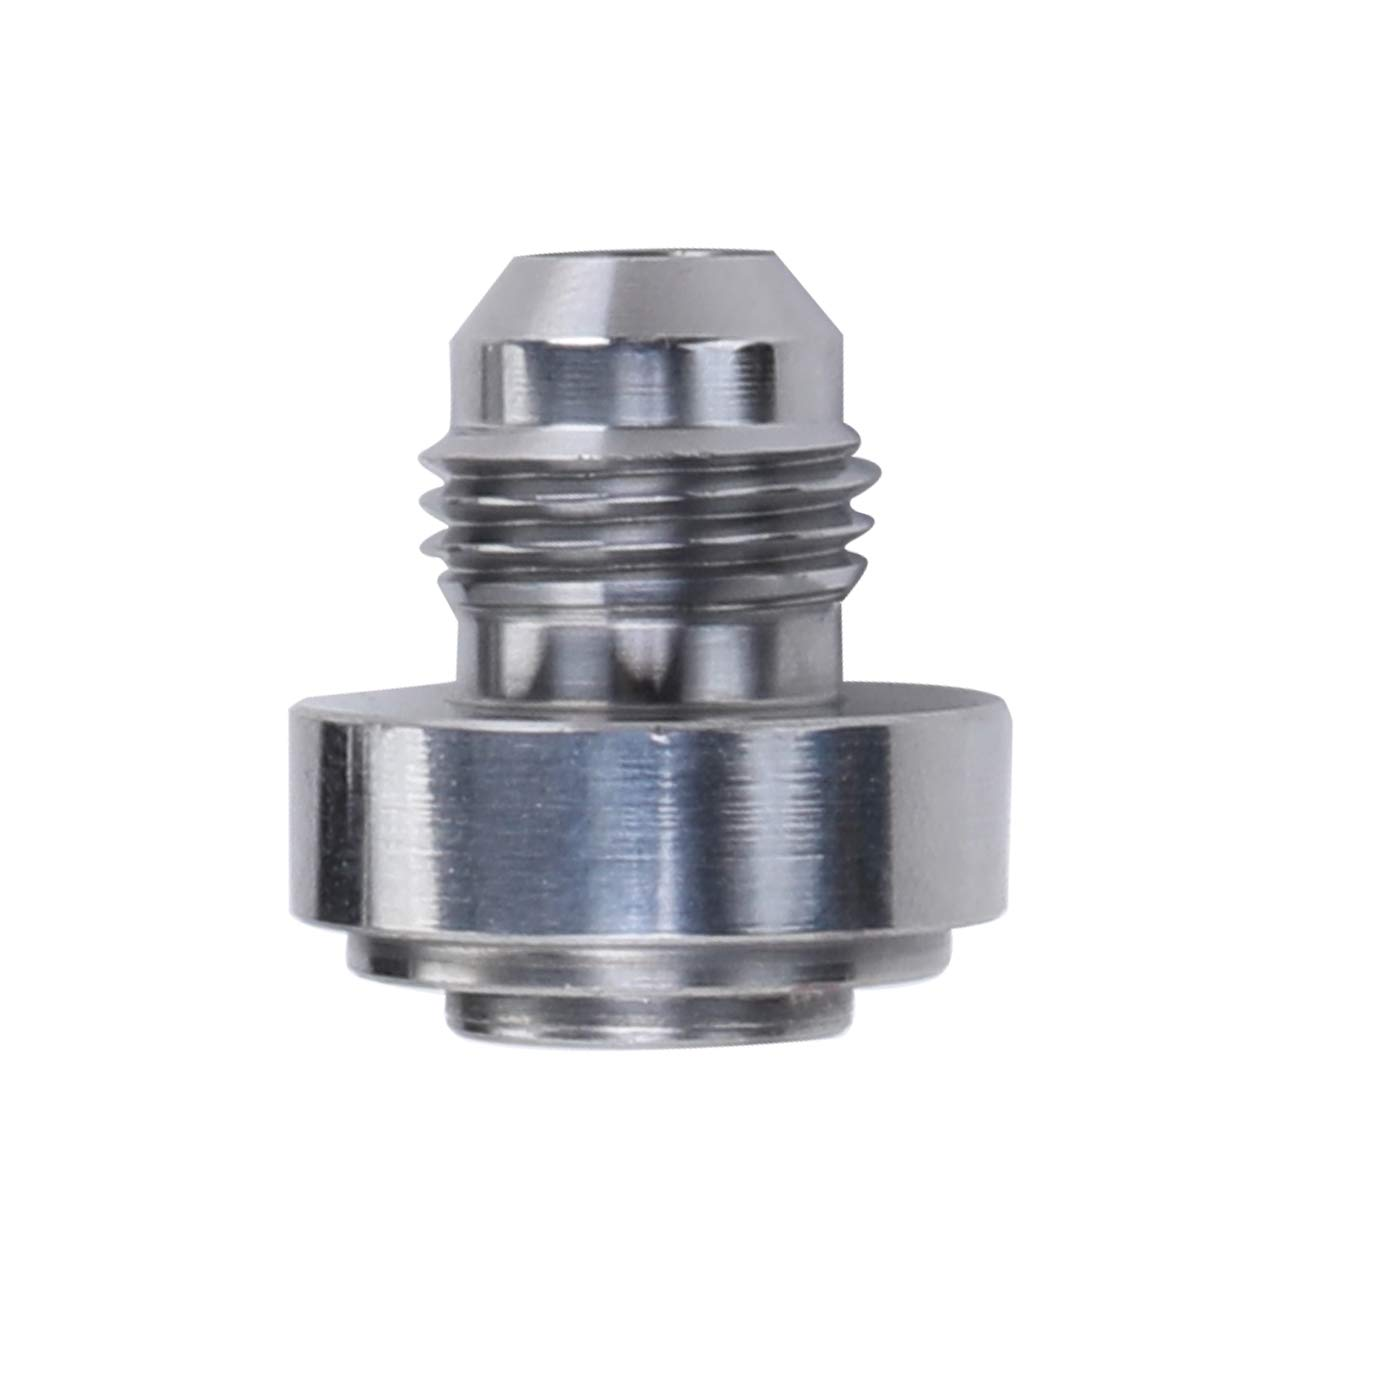 Thread Weldable Fuel Tank Fitting 10AN Steel Male Weld Bung AN10 JIC-10 AN Natrual 7//8-14